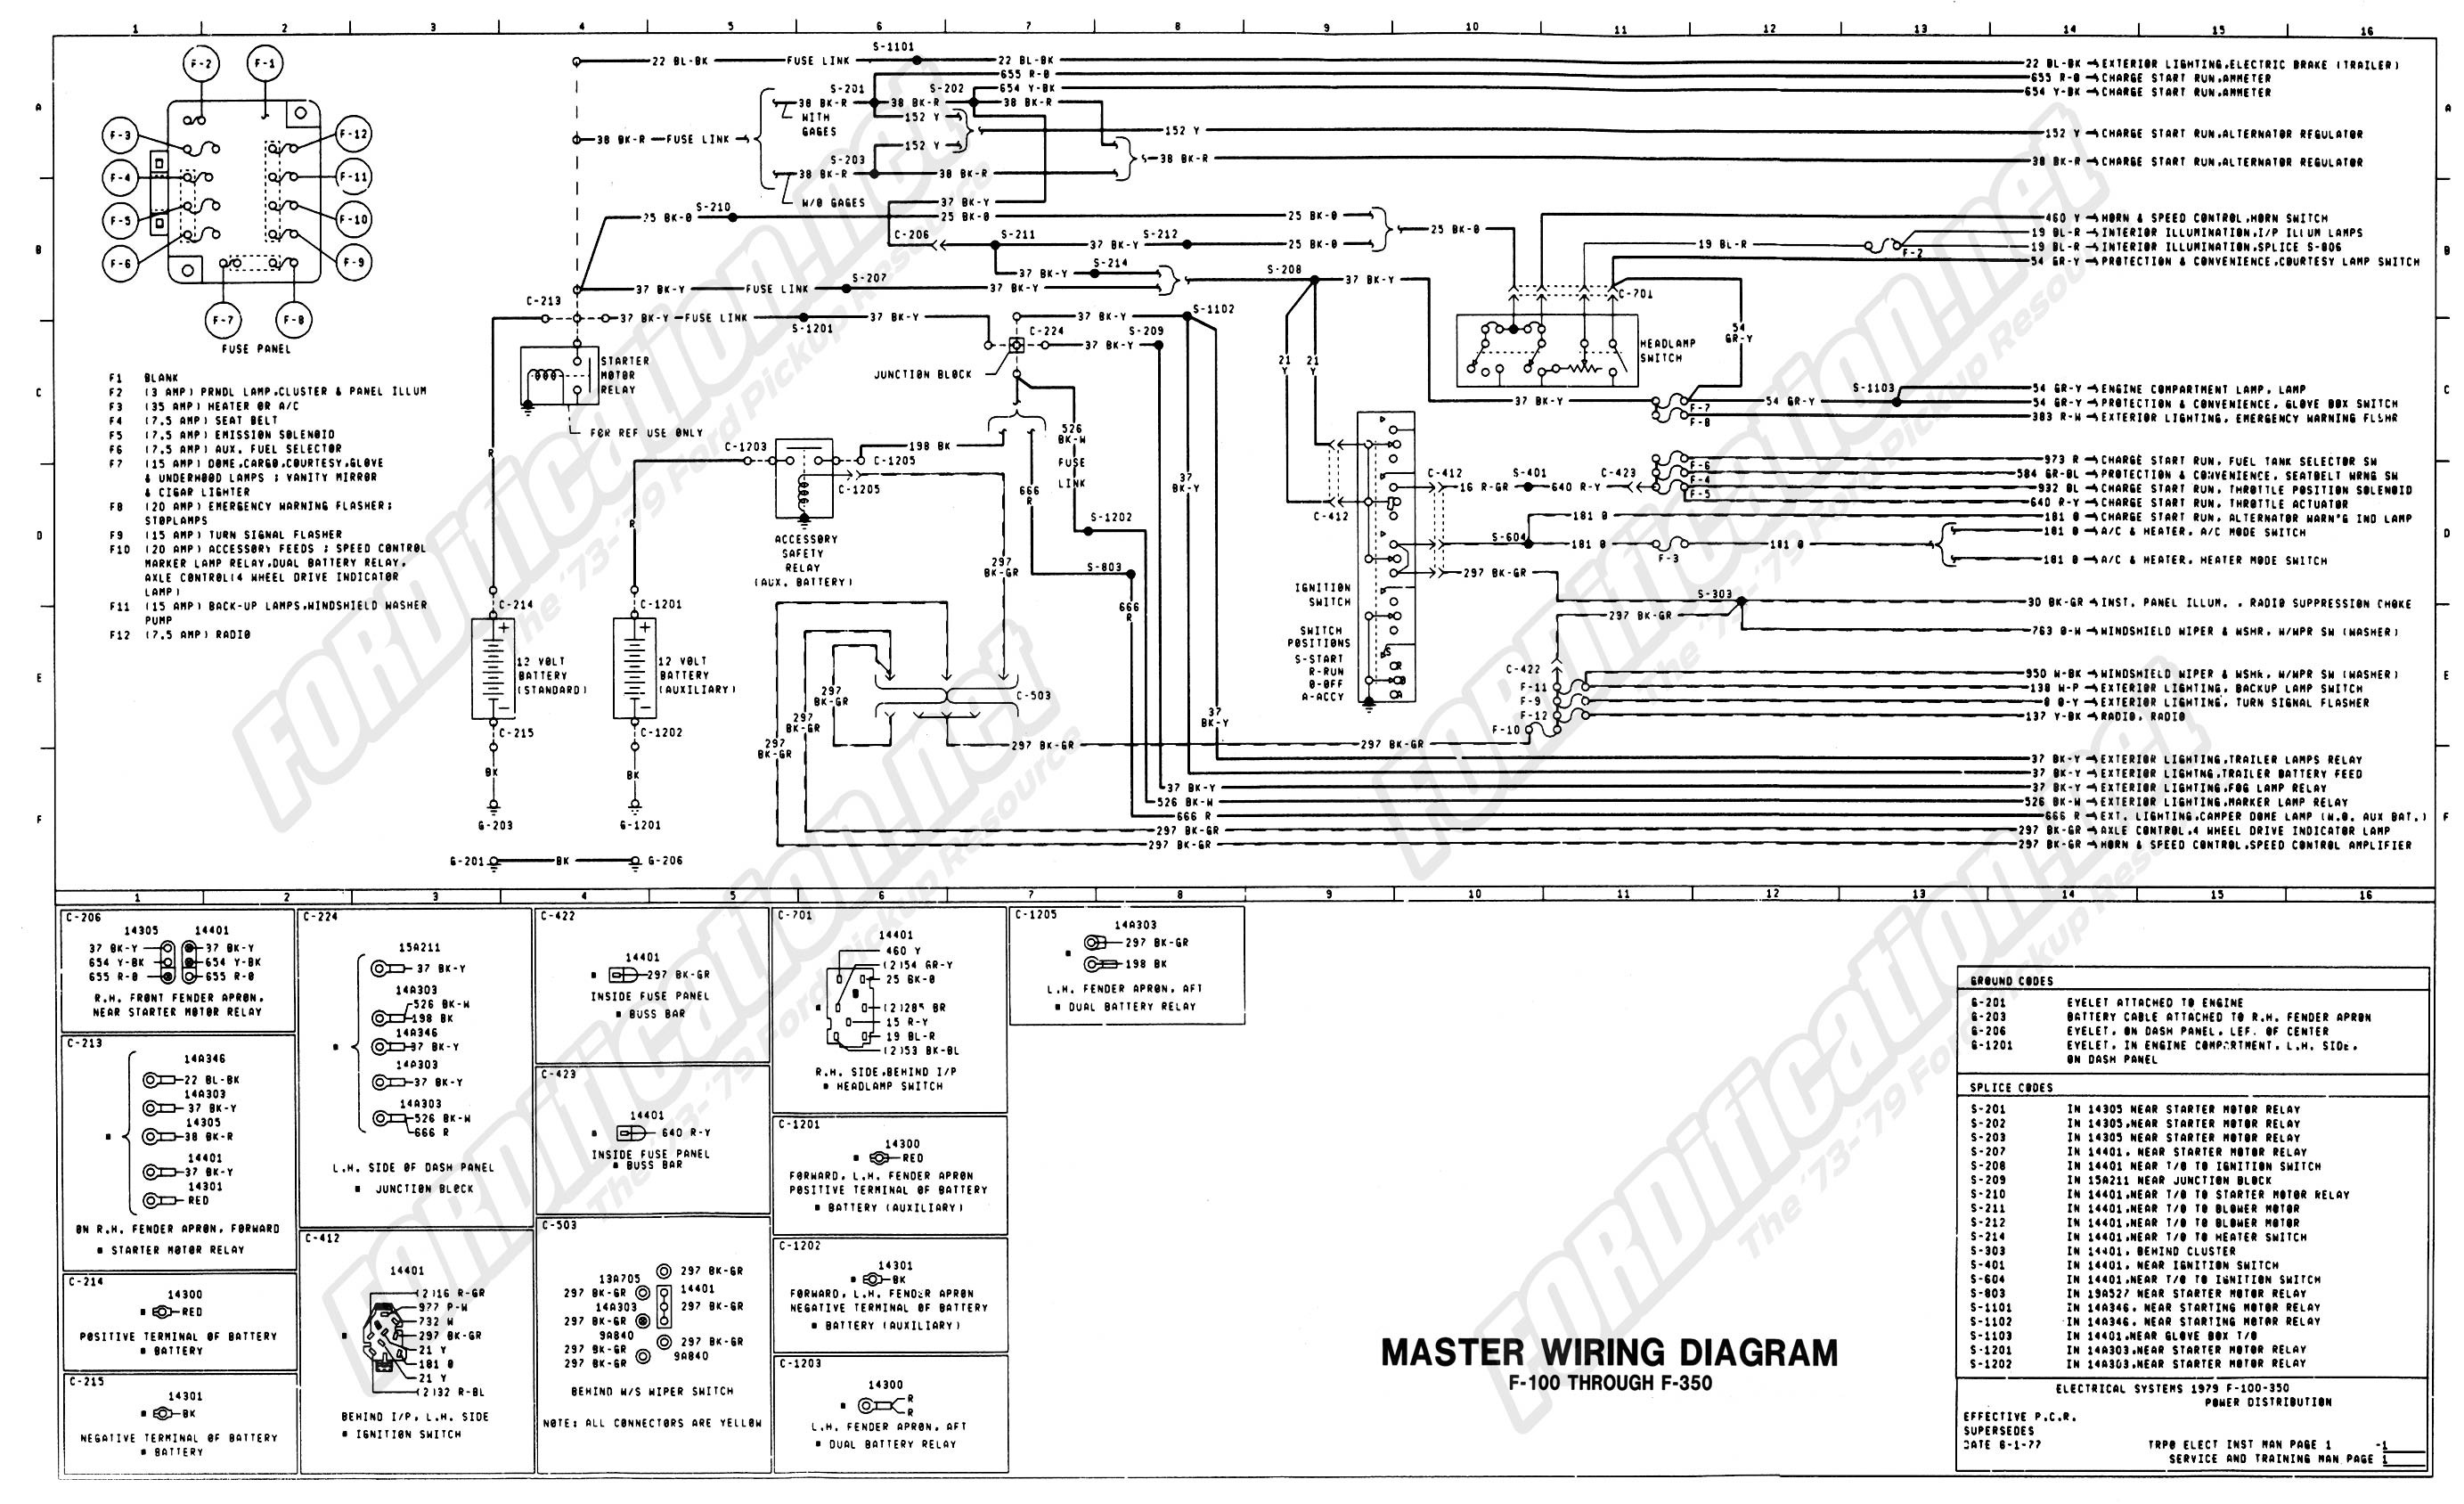 Ford F150 Tail Light Wiring Diagram 1973 1979 ford Truck Wiring Diagrams & Schematics fordification Of Ford F150 Tail Light Wiring Diagram Wiring Diagram for Automotive Lights New Stop Turn Tail Light Wiring